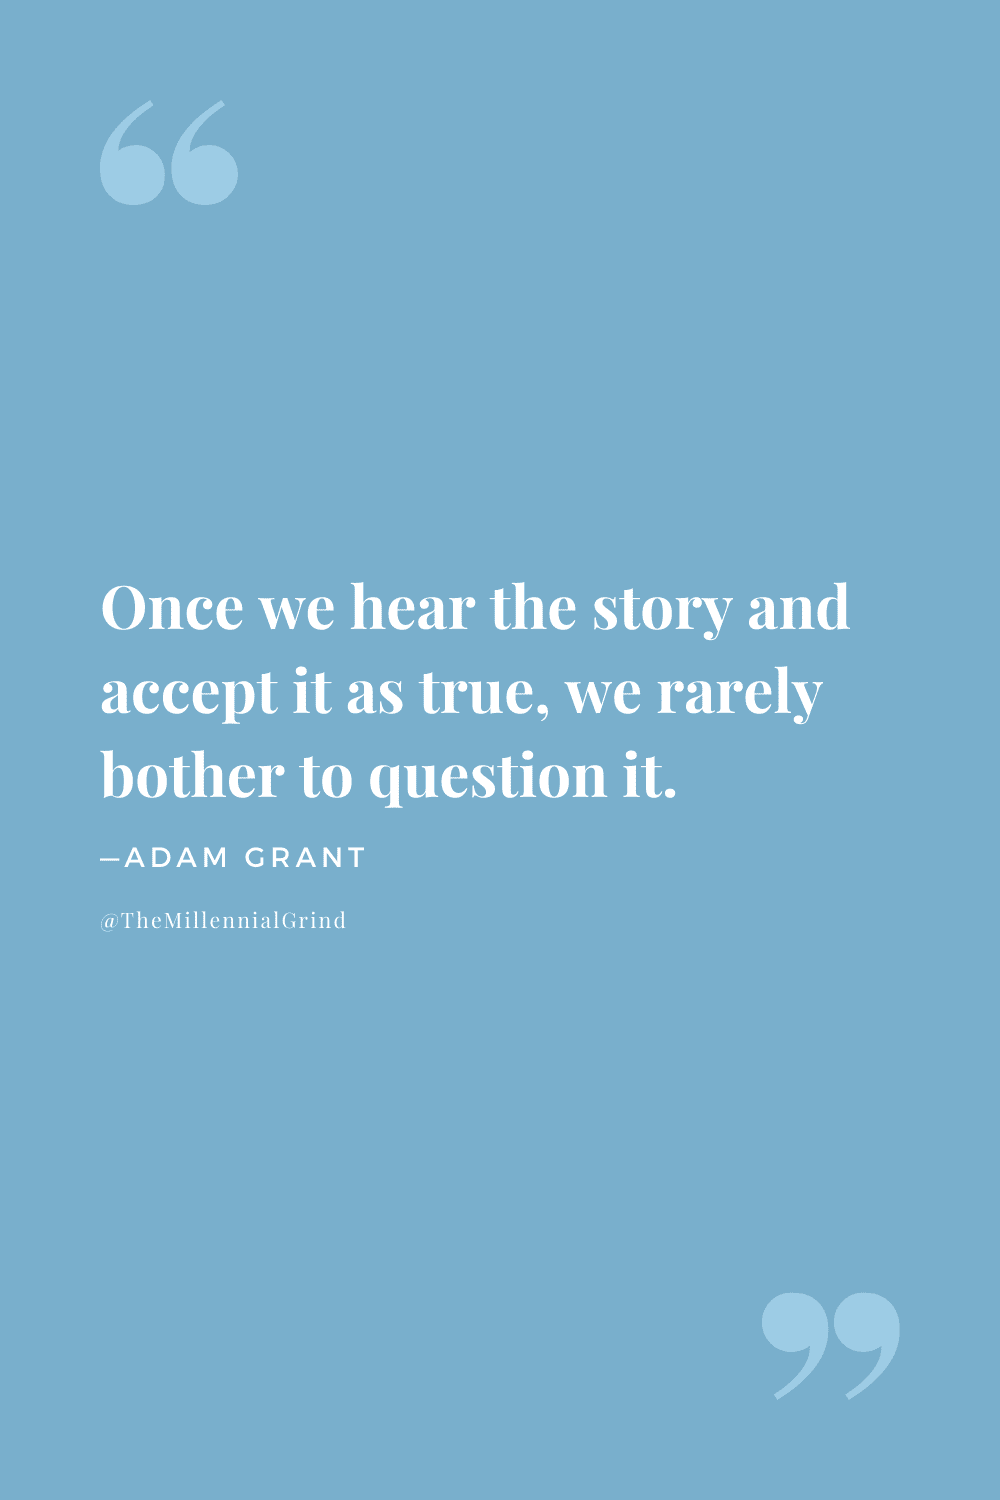 Quotes From Think Again by Adam Grant